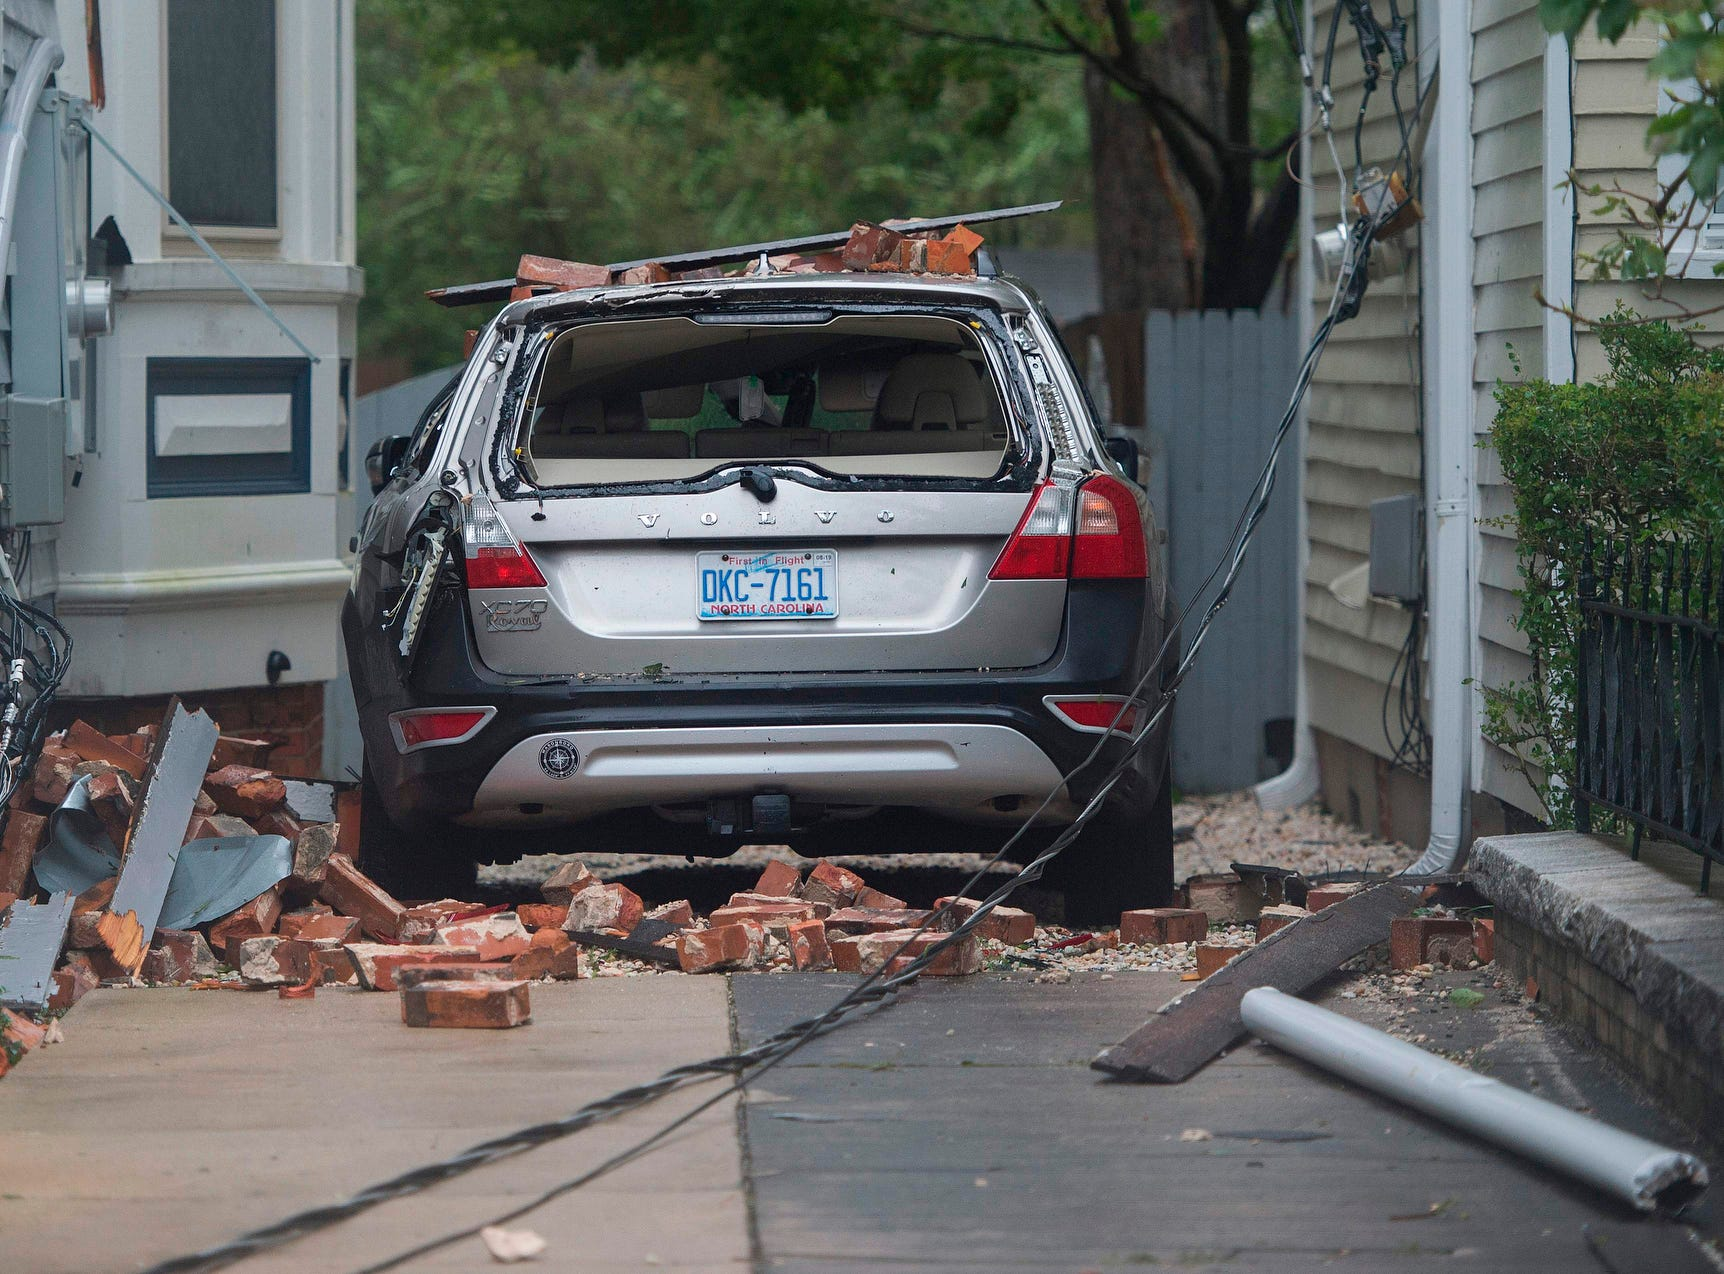 A car is destroyed from falling bricks as Hurricane Florence passes over Wilmington, N.C., Friday.  Florence smashed into the US East Coast Friday with howling winds, torrential rains and life-threatening storm surges as emergency crews scrambled to rescue hundreds of people stranded in their homes by flood waters. Forecasters warned of catastrophic flooding and other mayhem from the monster storm, which is only Category 1 but physically sprawling and dangerous.